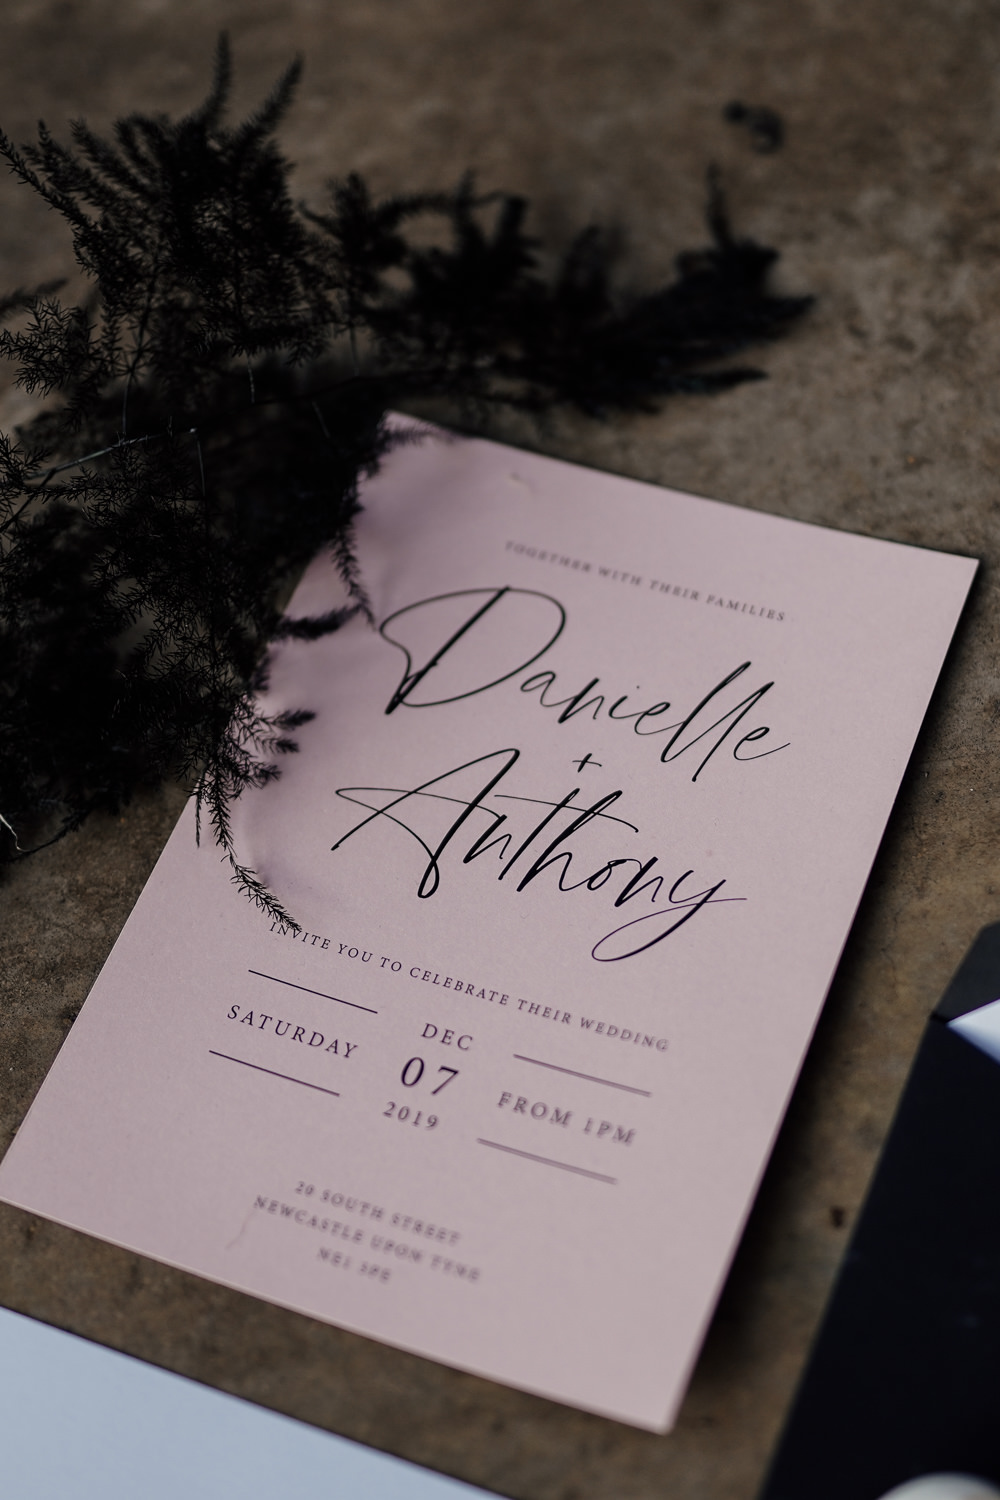 Stationery Invite Invitation Pink Black Industrial Wedding Ideas Sam Sparks Photography